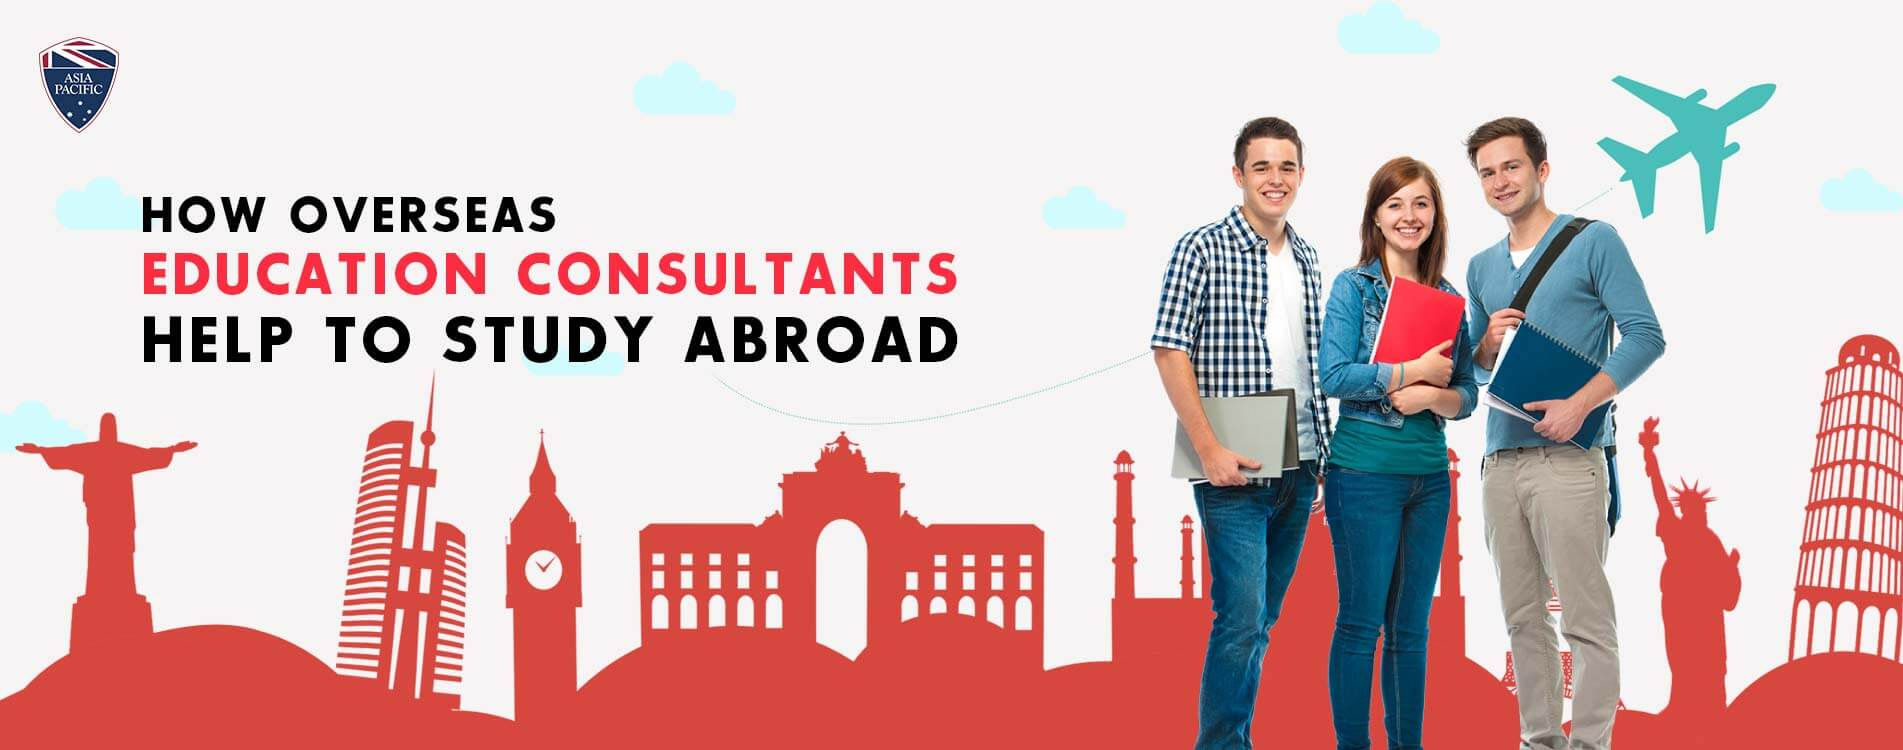 How Overseas Education Consultants Help to Study Abroad